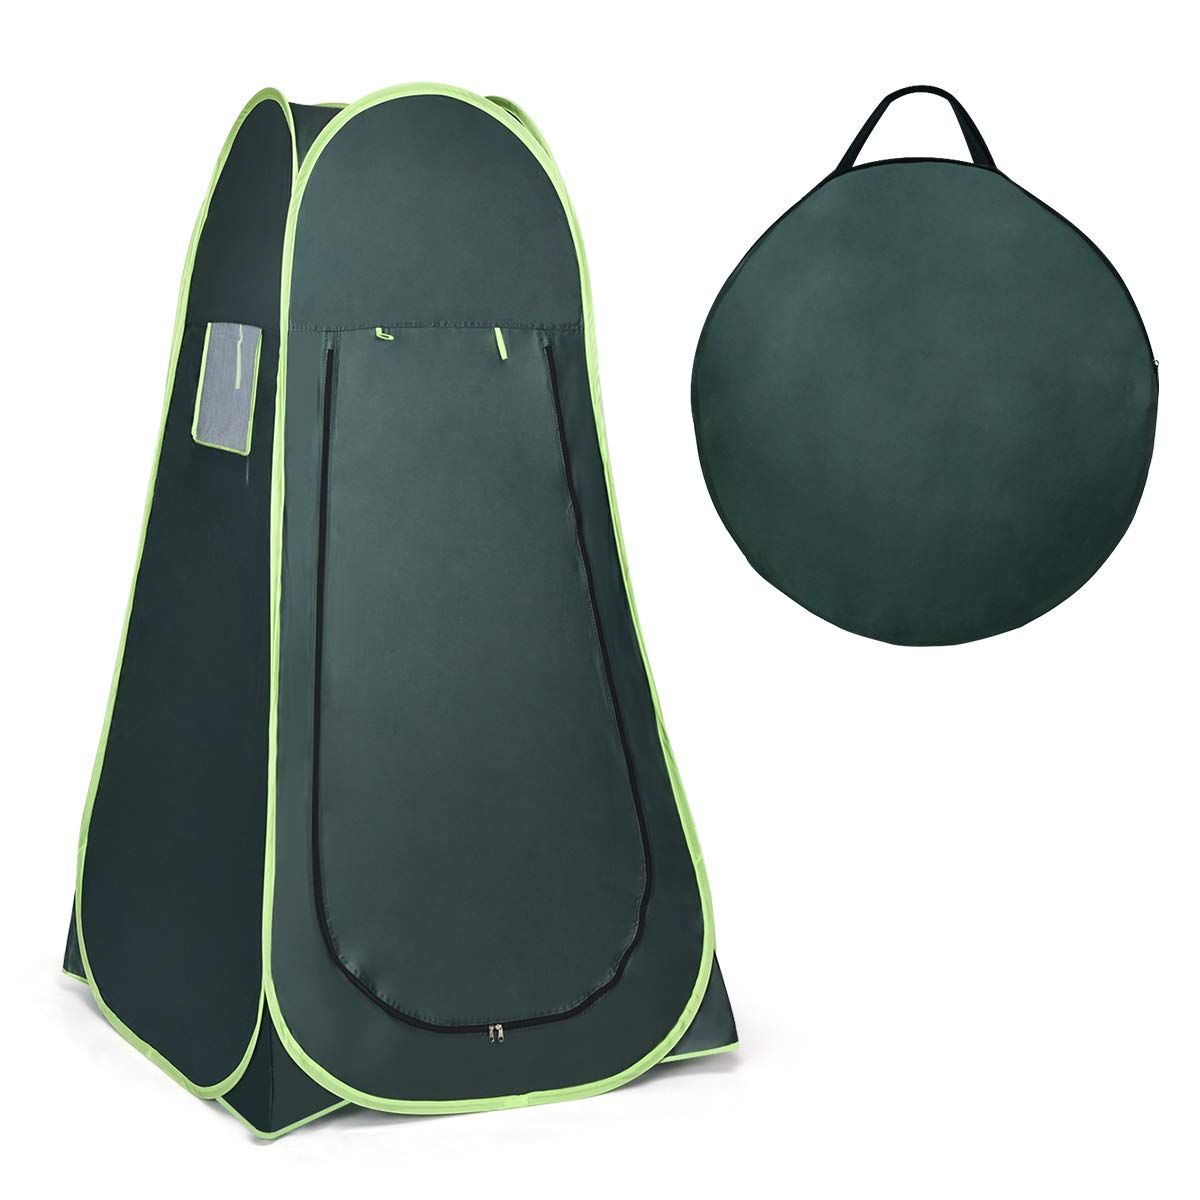 Giantex Pop Up Shower Tent Portable Camping Tent for Dressing, Toilet, Changing Room, Outdoor Privacy Shelter(Green) by Giantex